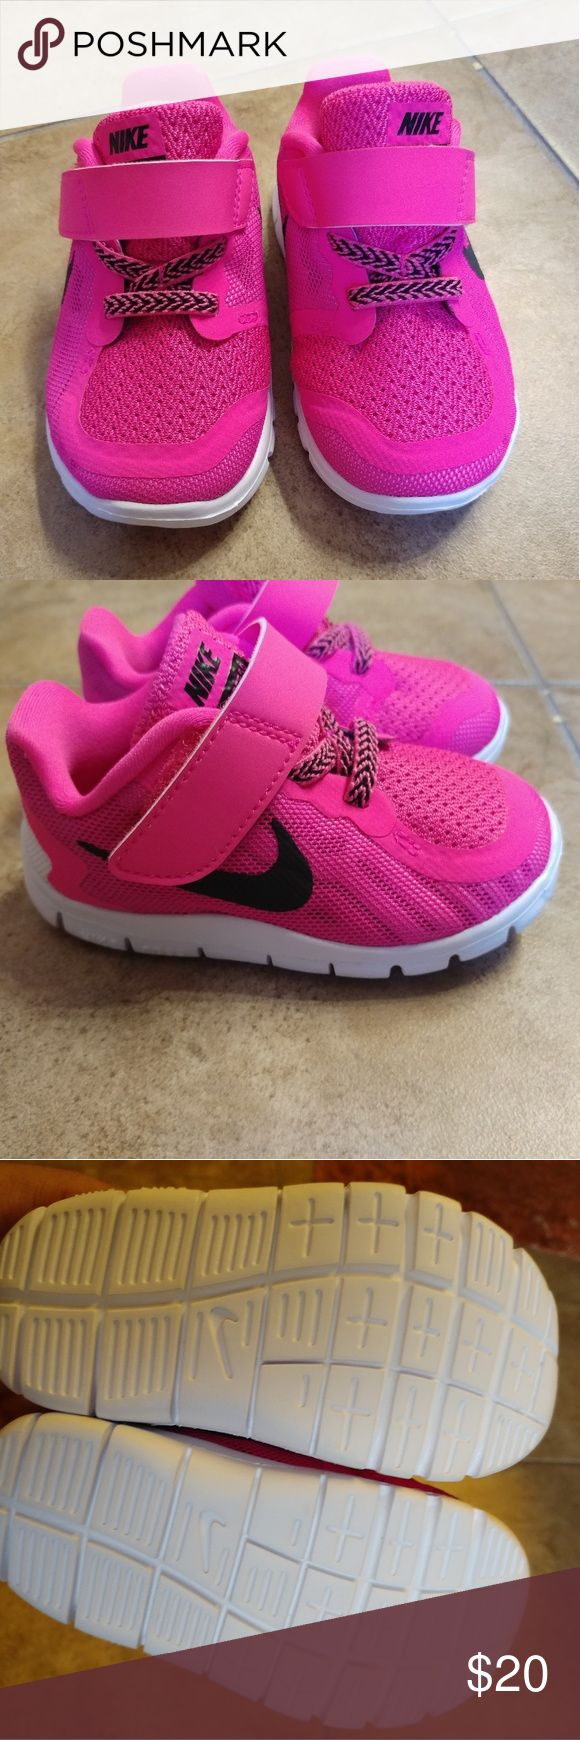 Nike 5.0 Toddler shoes size 5c New without box baby girl Nike 5.0 Running shoes they are Bright Pink Nike Shoes Sneakers